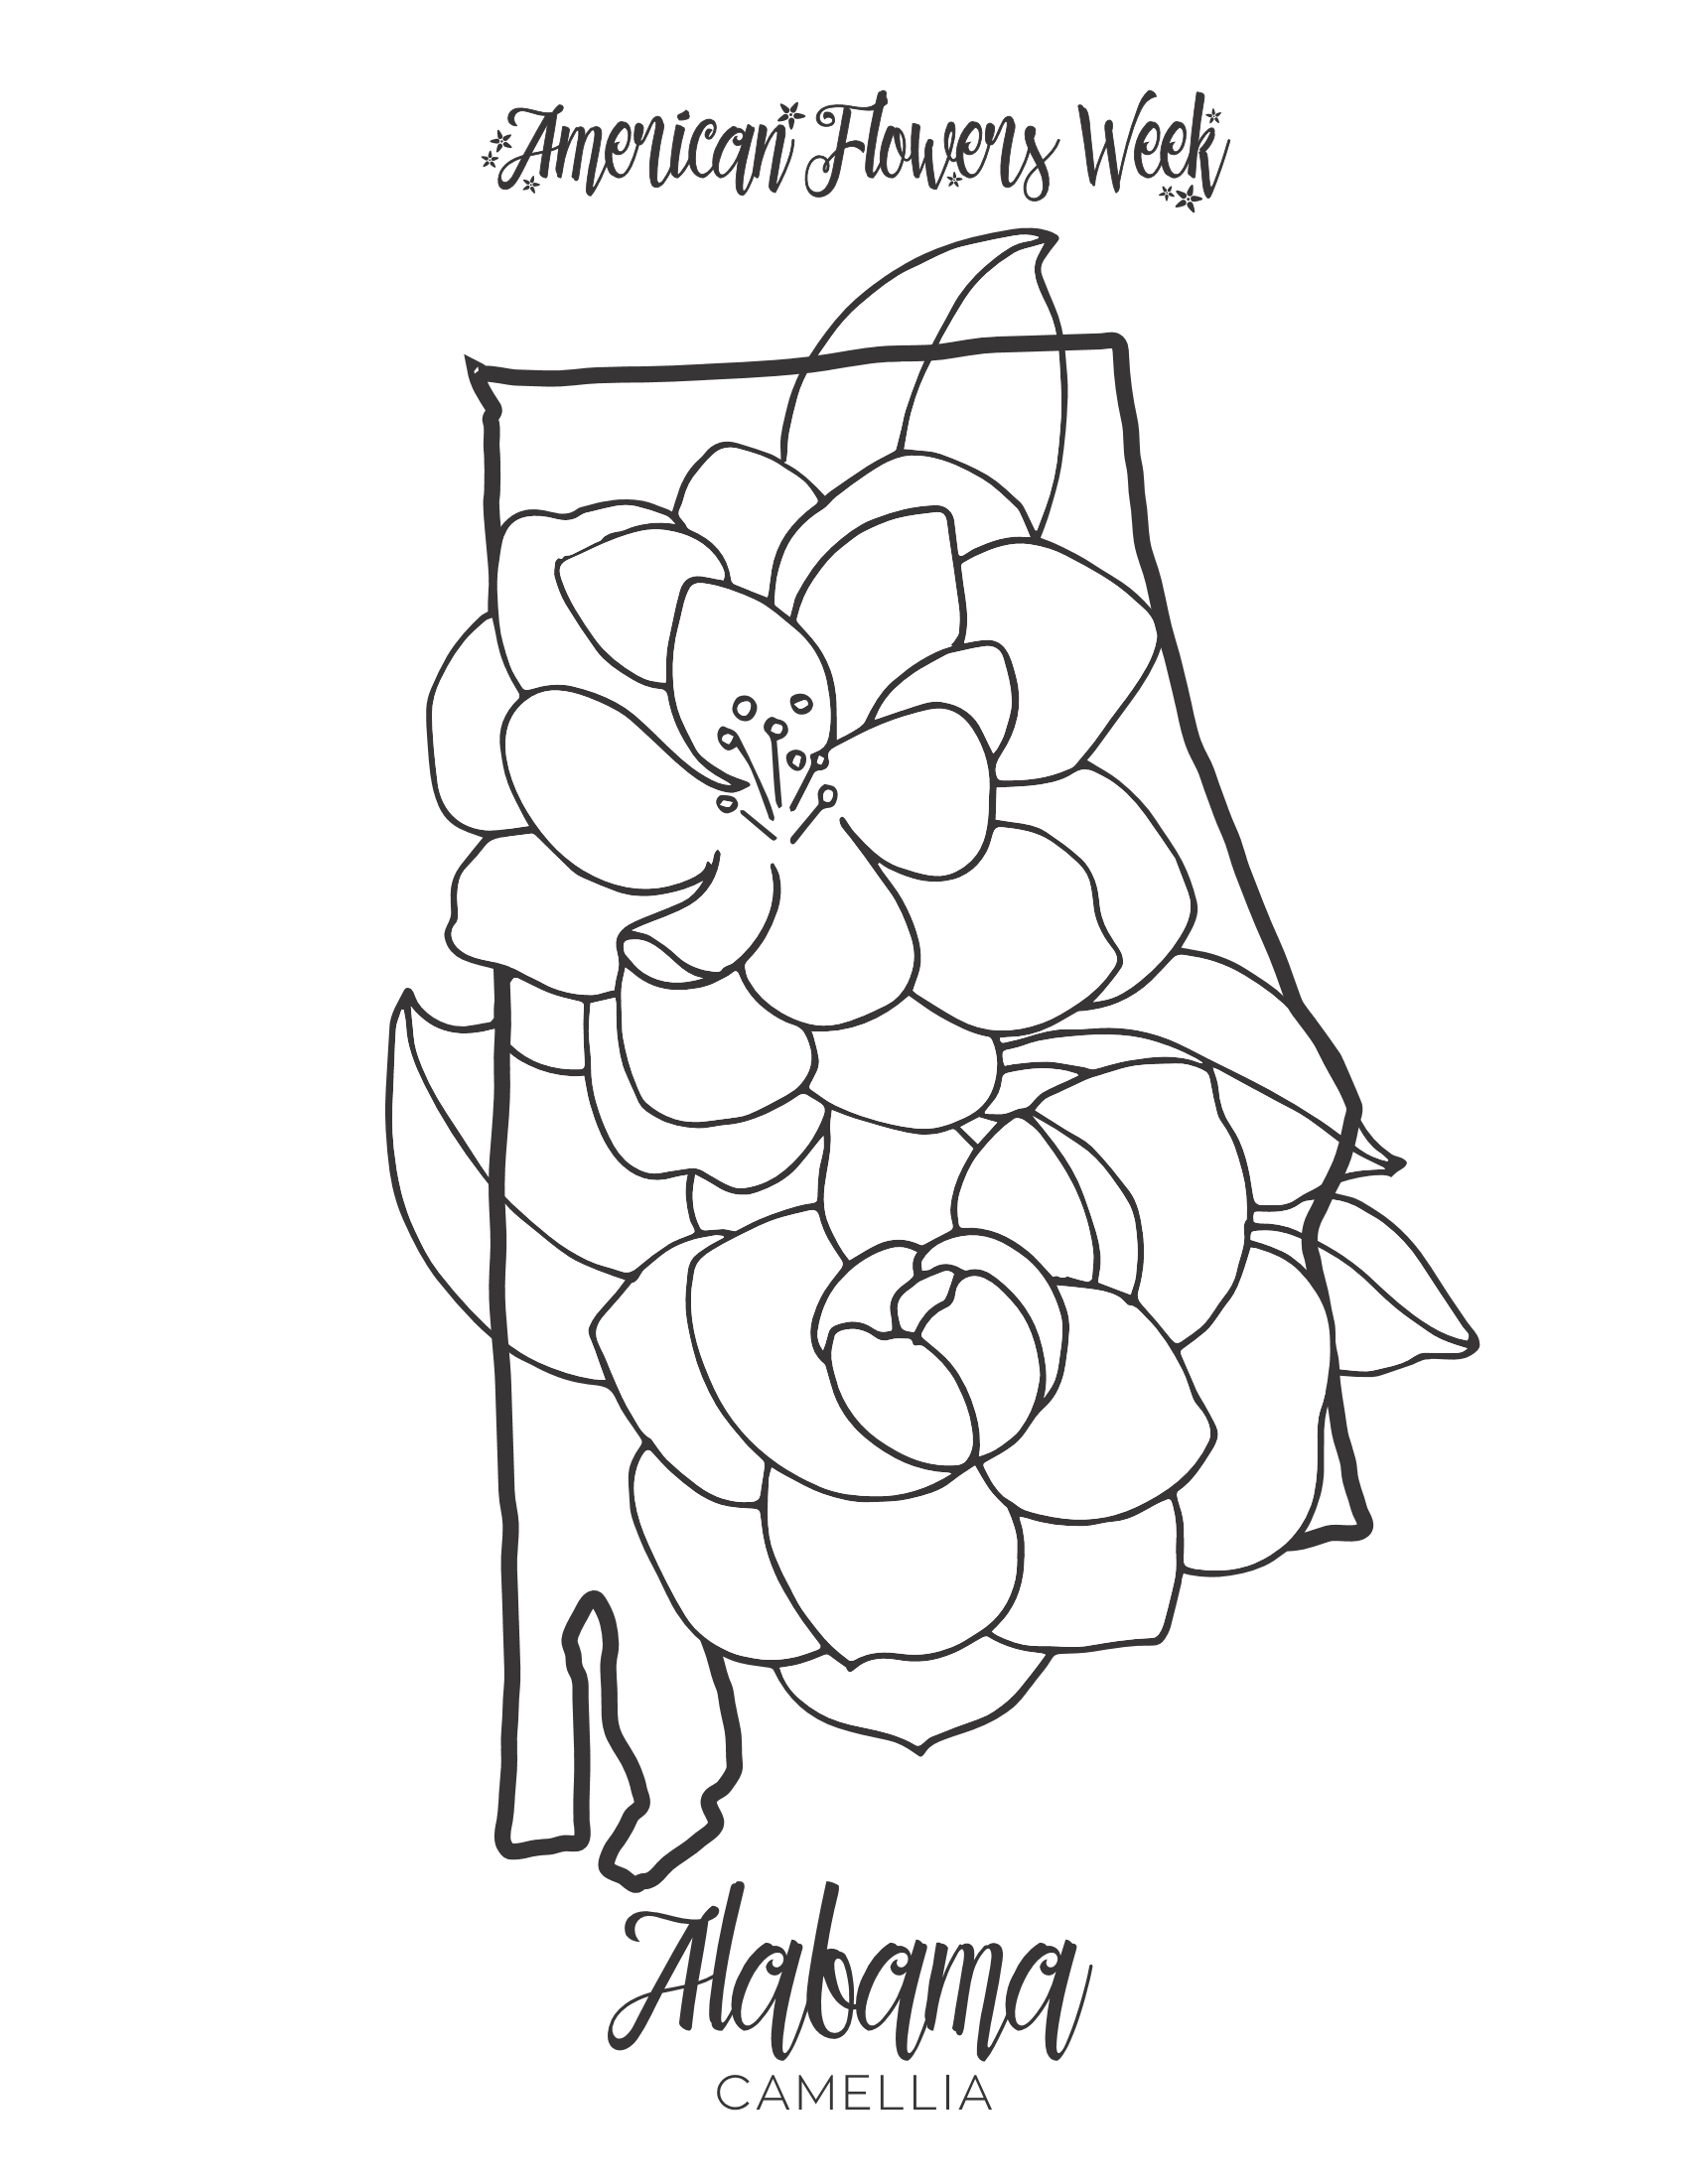 michigan state flower faerlmarie coloring pages 32 michigan state flag coloring flower michigan state